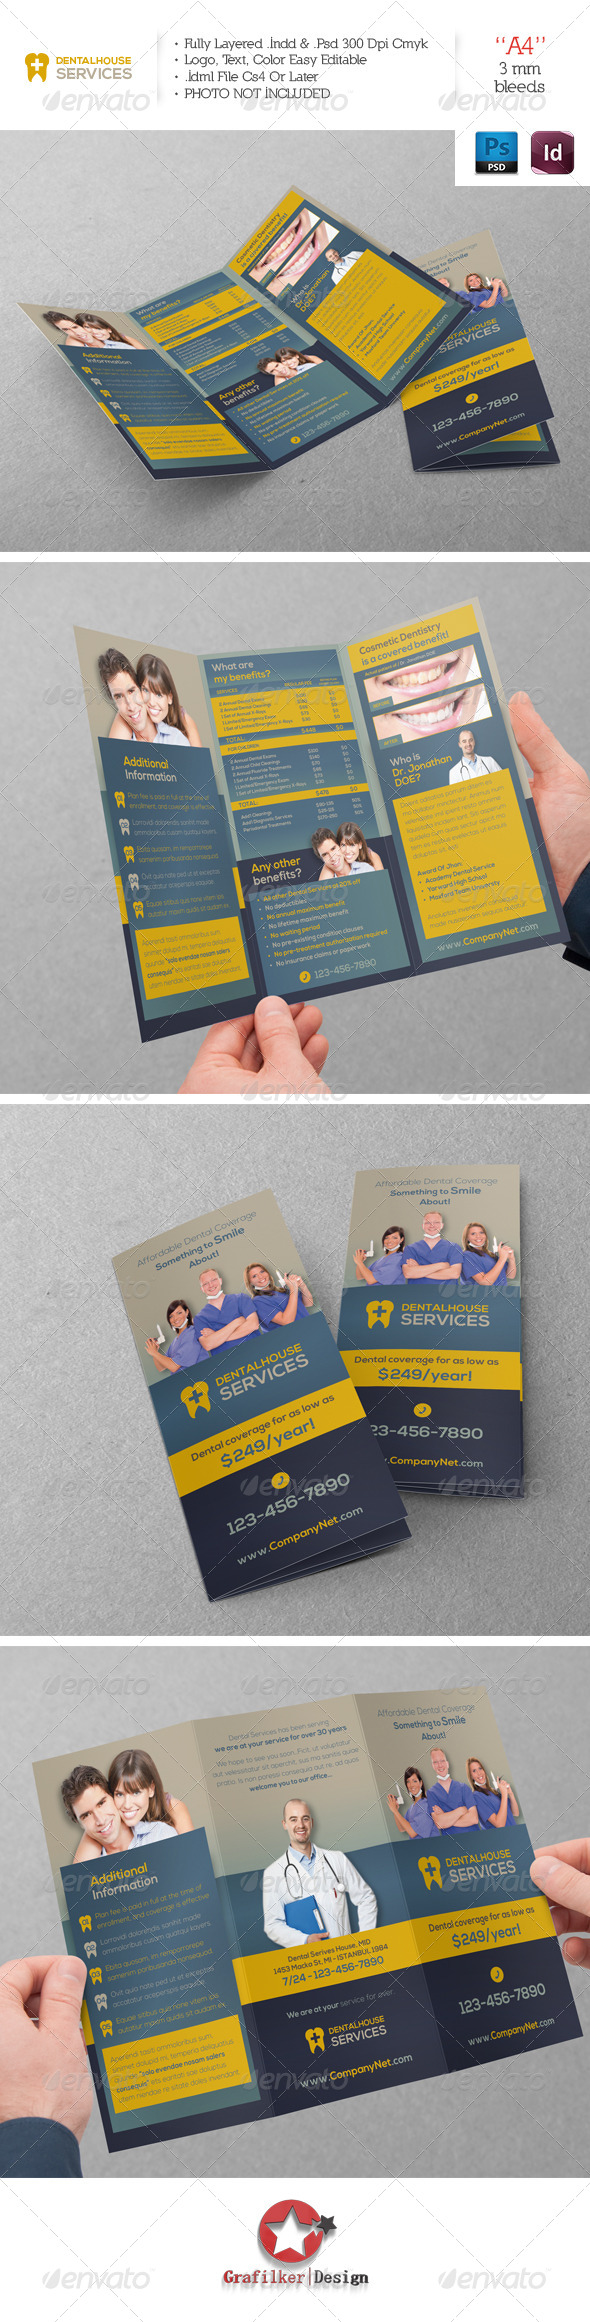 GraphicRiver Dental Services Trifold Template 6189906